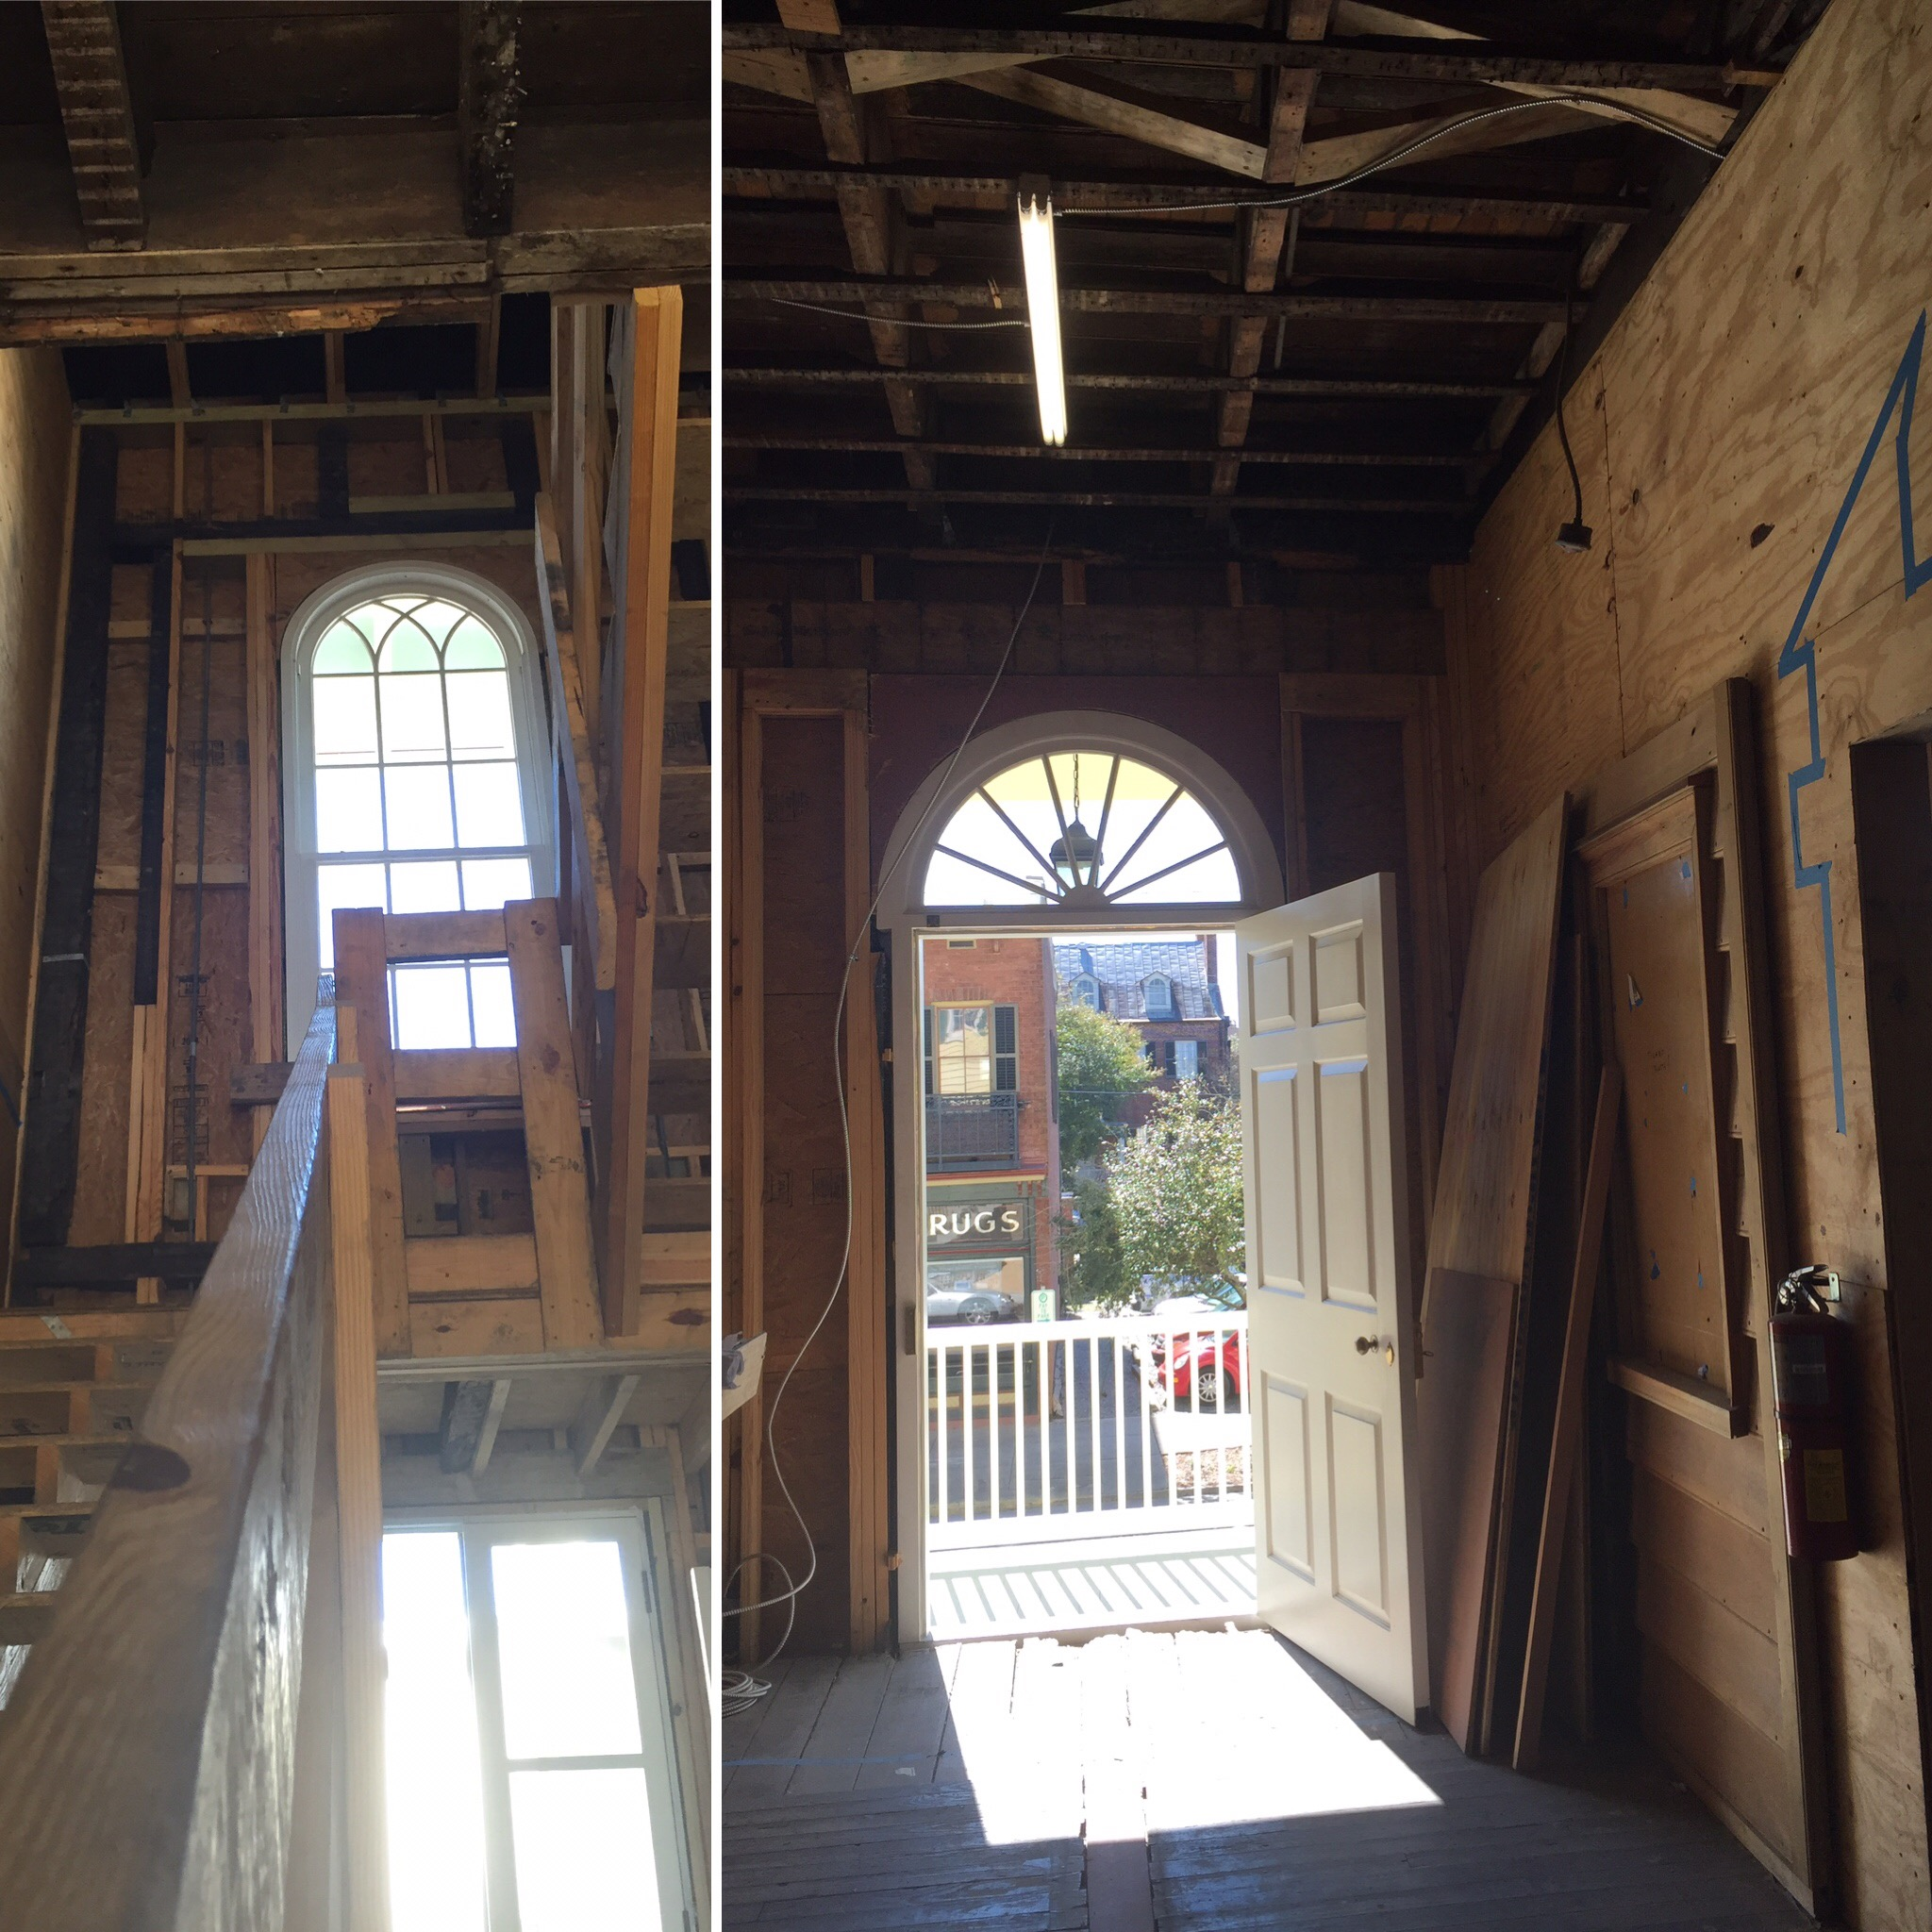 Left: looking toward the back of the house and the rebuilt central staircase. Right: Looking out the front door of the house.